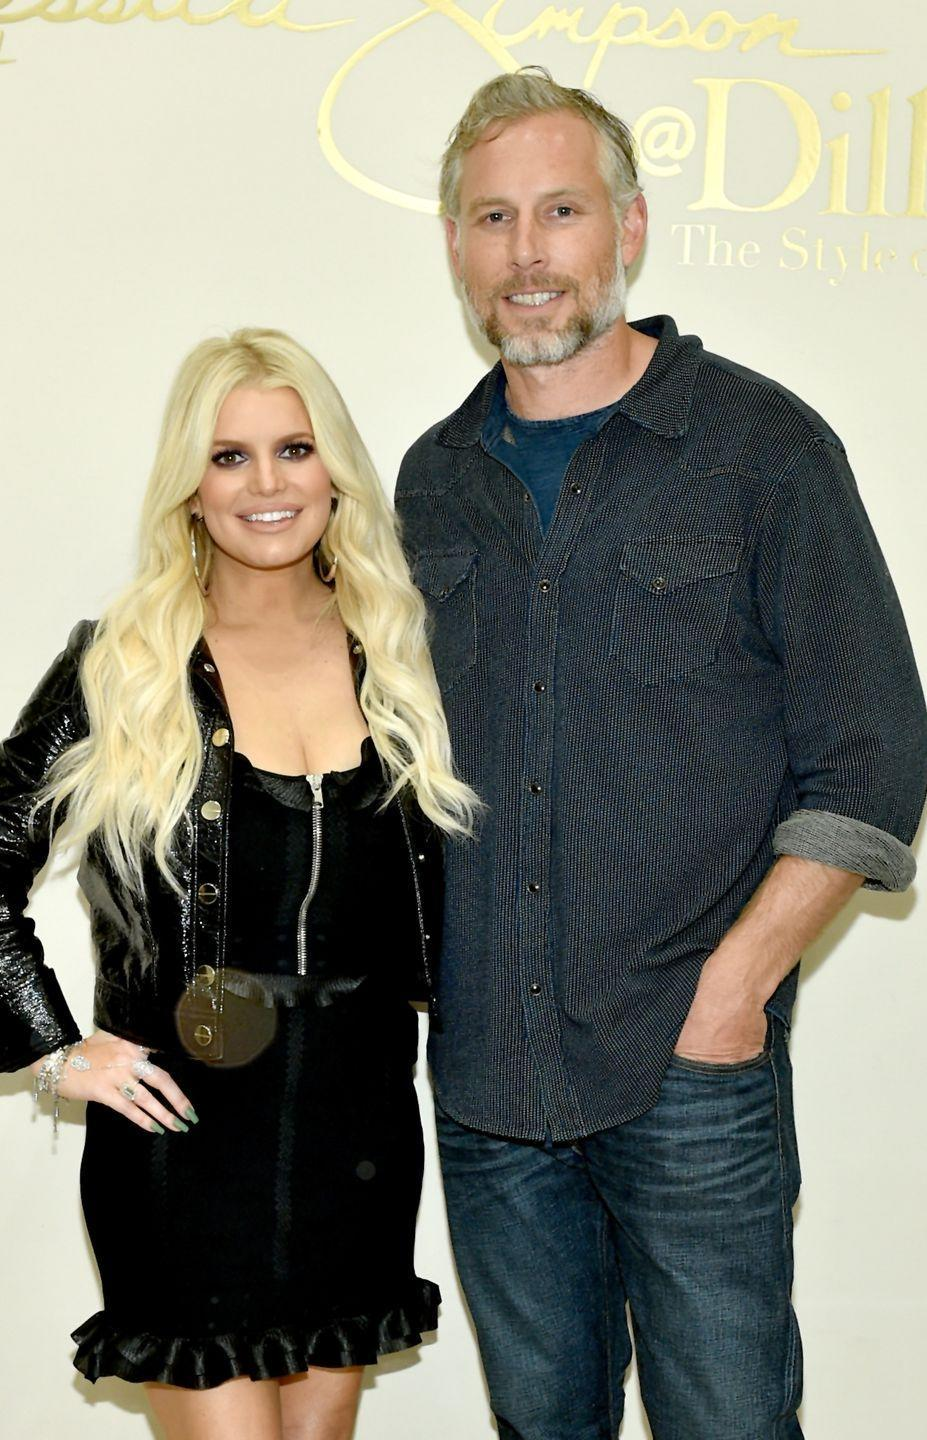 "<p>In March 2019, Jessica Simpson announced the arrival of her third child, a girl named Birdie, <a href=""https://www.instagram.com/p/BvPhGV0gagY/"" rel=""nofollow noopener"" target=""_blank"" data-ylk=""slk:on Instagram"" class=""link rapid-noclick-resp"">on Instagram</a>. The fashion maven and pop singer's ""<a href=""https://www.instagram.com/p/Bwh0ndsj--I/"" rel=""nofollow noopener"" target=""_blank"" data-ylk=""slk:party of five"" class=""link rapid-noclick-resp"">party of five</a>"" also includes husband Eric Johnson, daughter Maxwell Drew, and son Ace Knute.</p>"